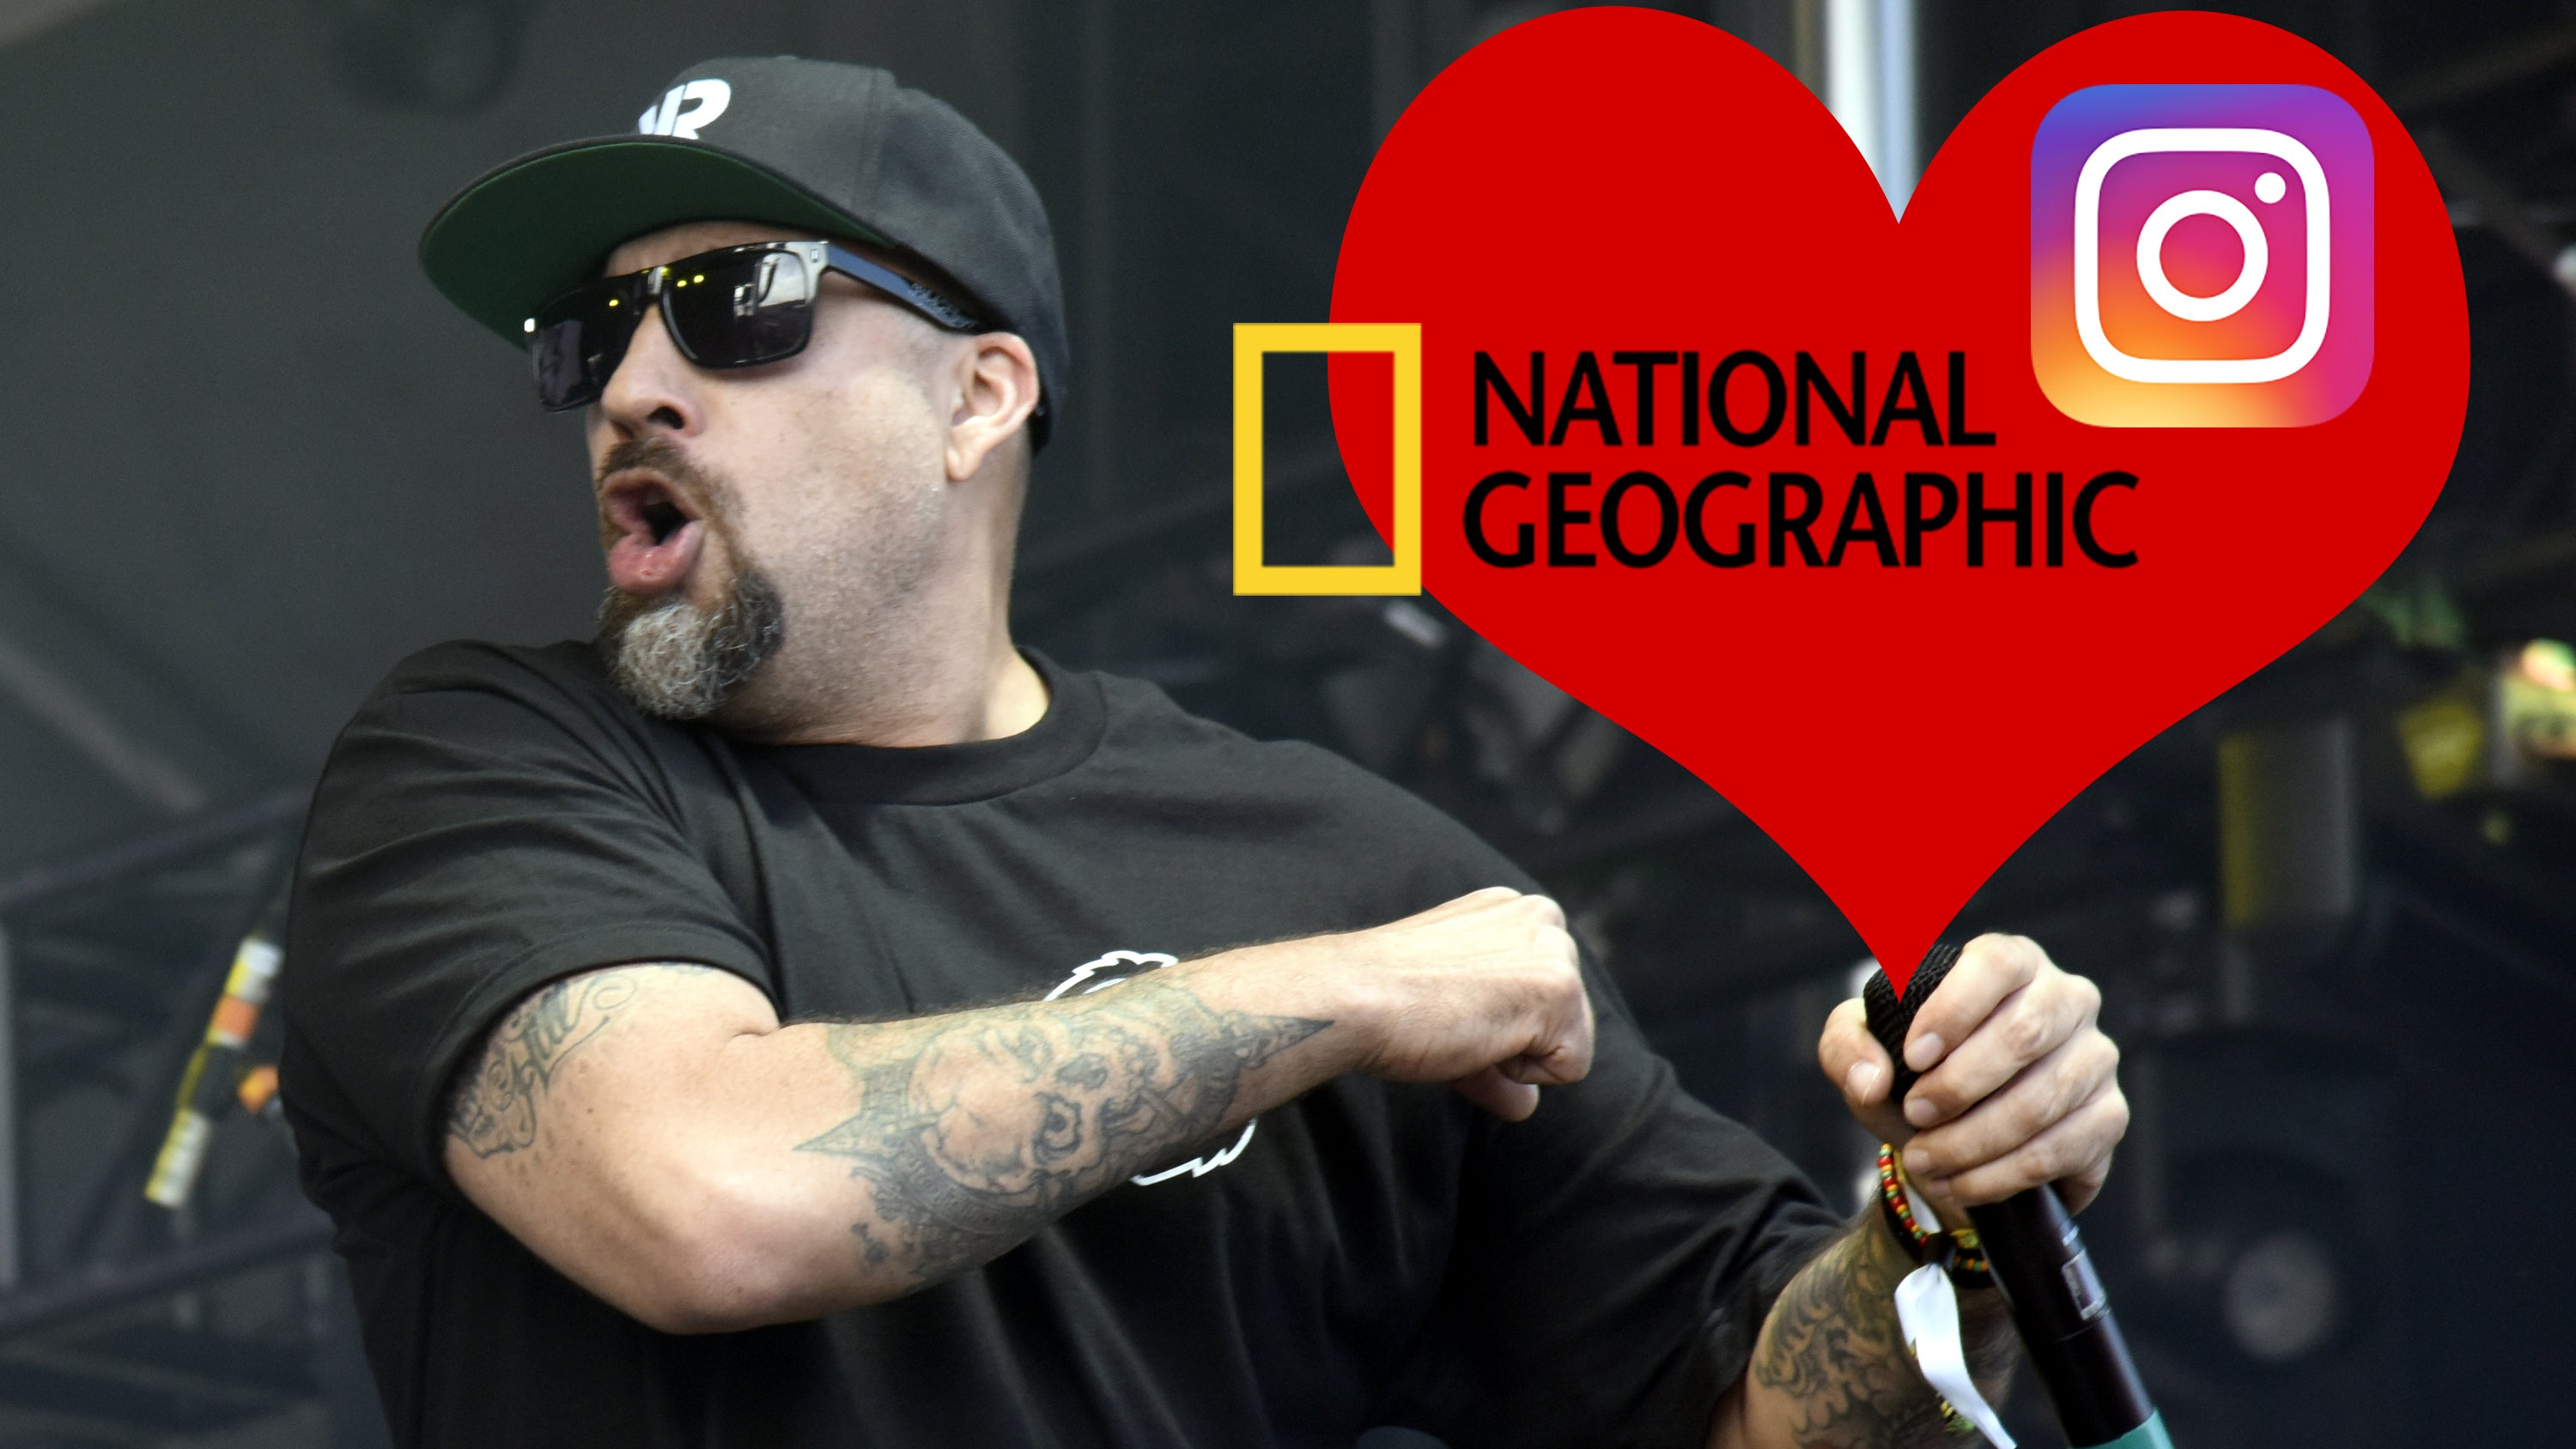 Cypress Hill Is Blowing Up NatGeo's Instagram